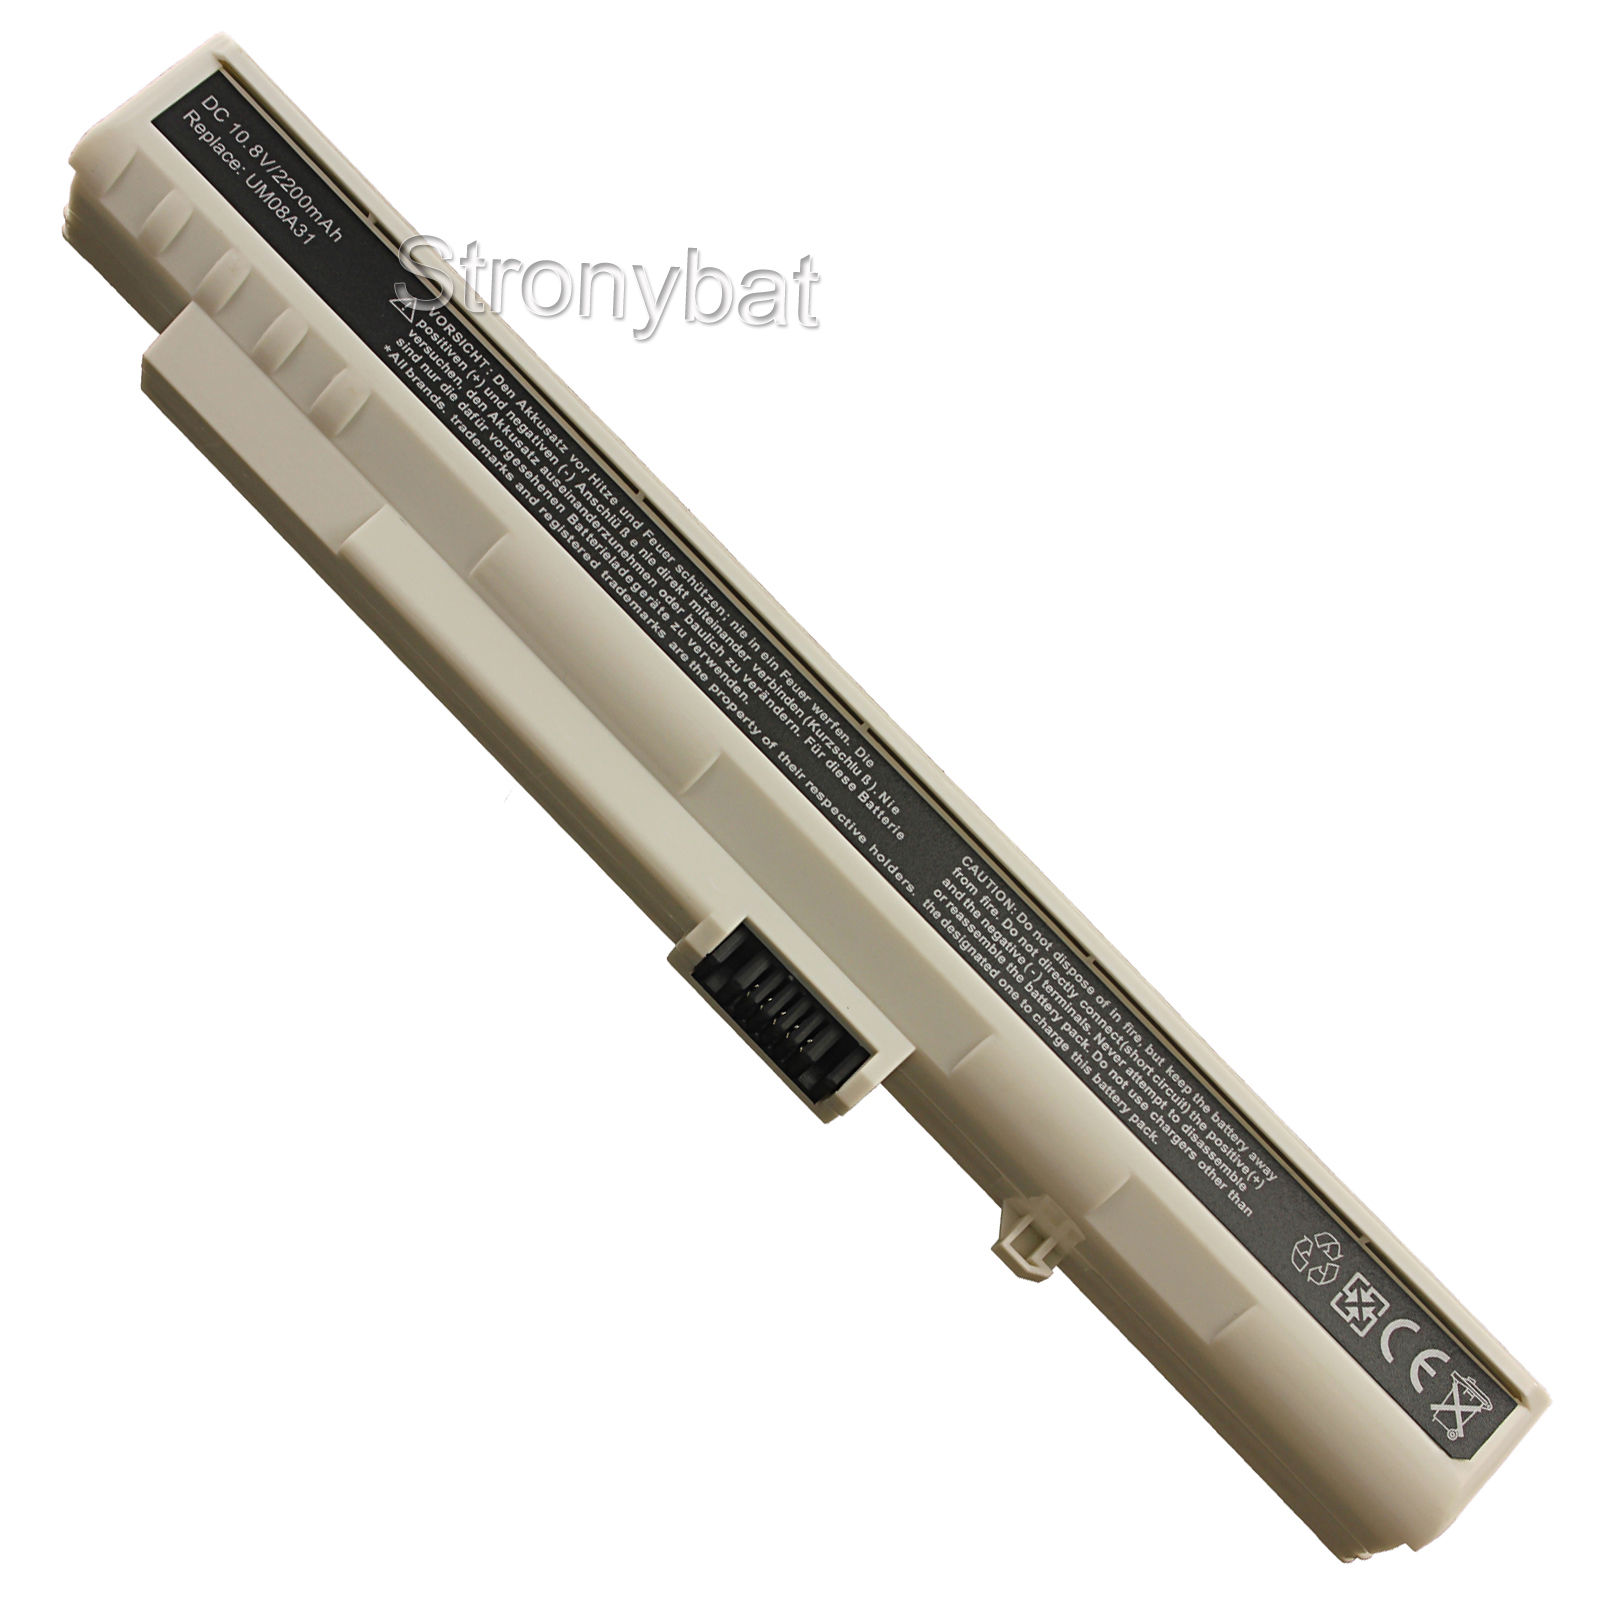 PIN LAPTOP ACER ONE A0A110 A110 A150 AOA150 D250 KAV10 KAV60 ZG5 TRẮNG 6 CELL